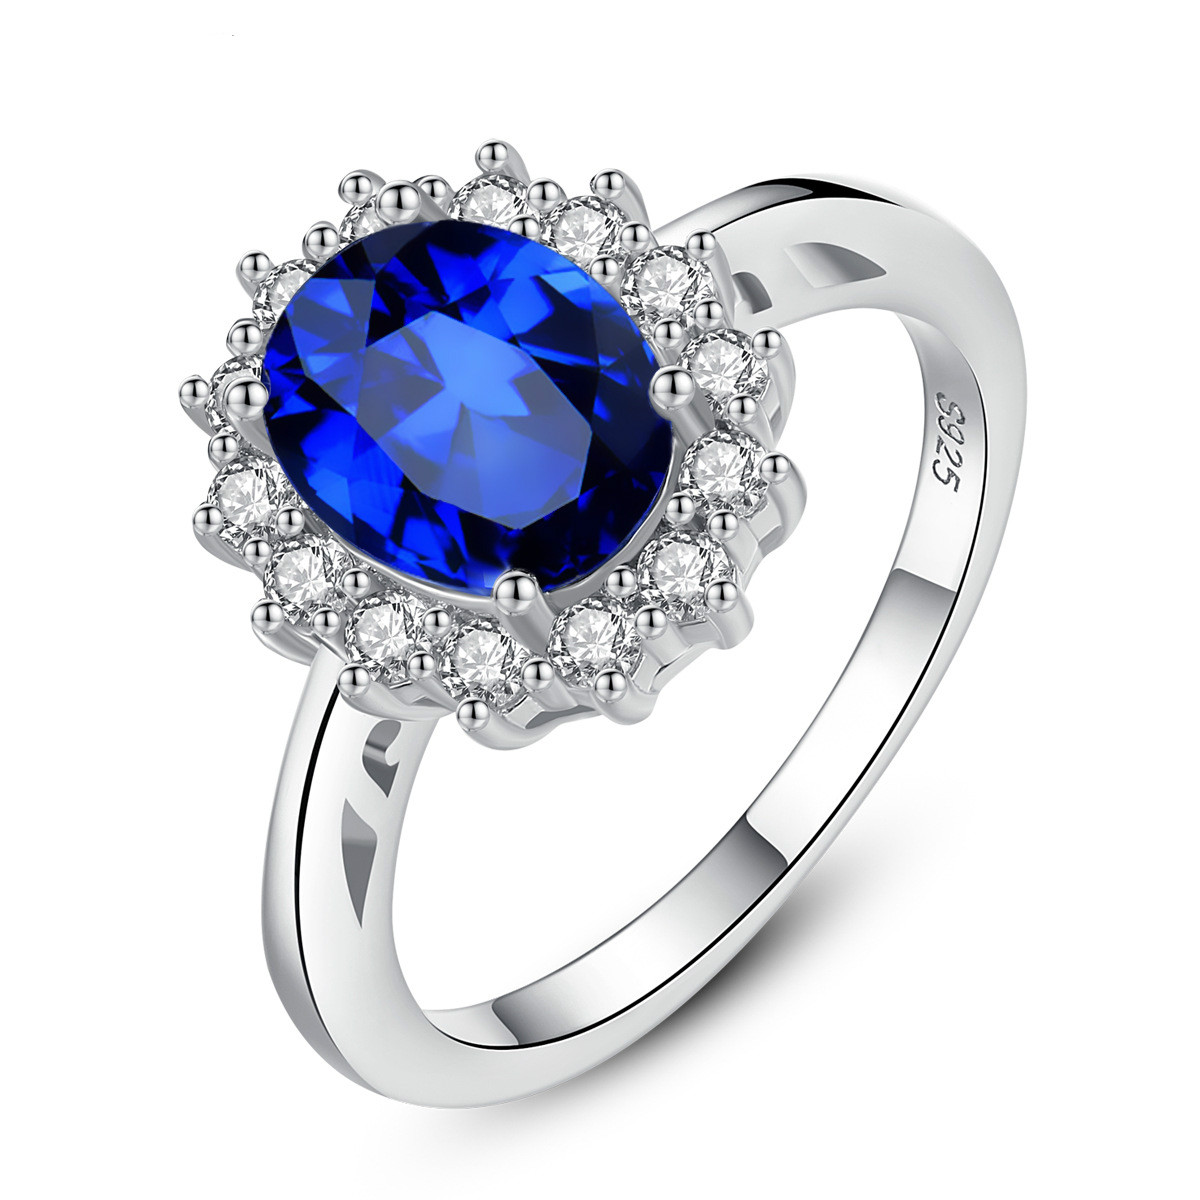 Sapphire 925 Sterling Silver Rings for Women Gemstone Silver Rings 925 Ladies Engagement Rings Sterling Silver Princess Jewel